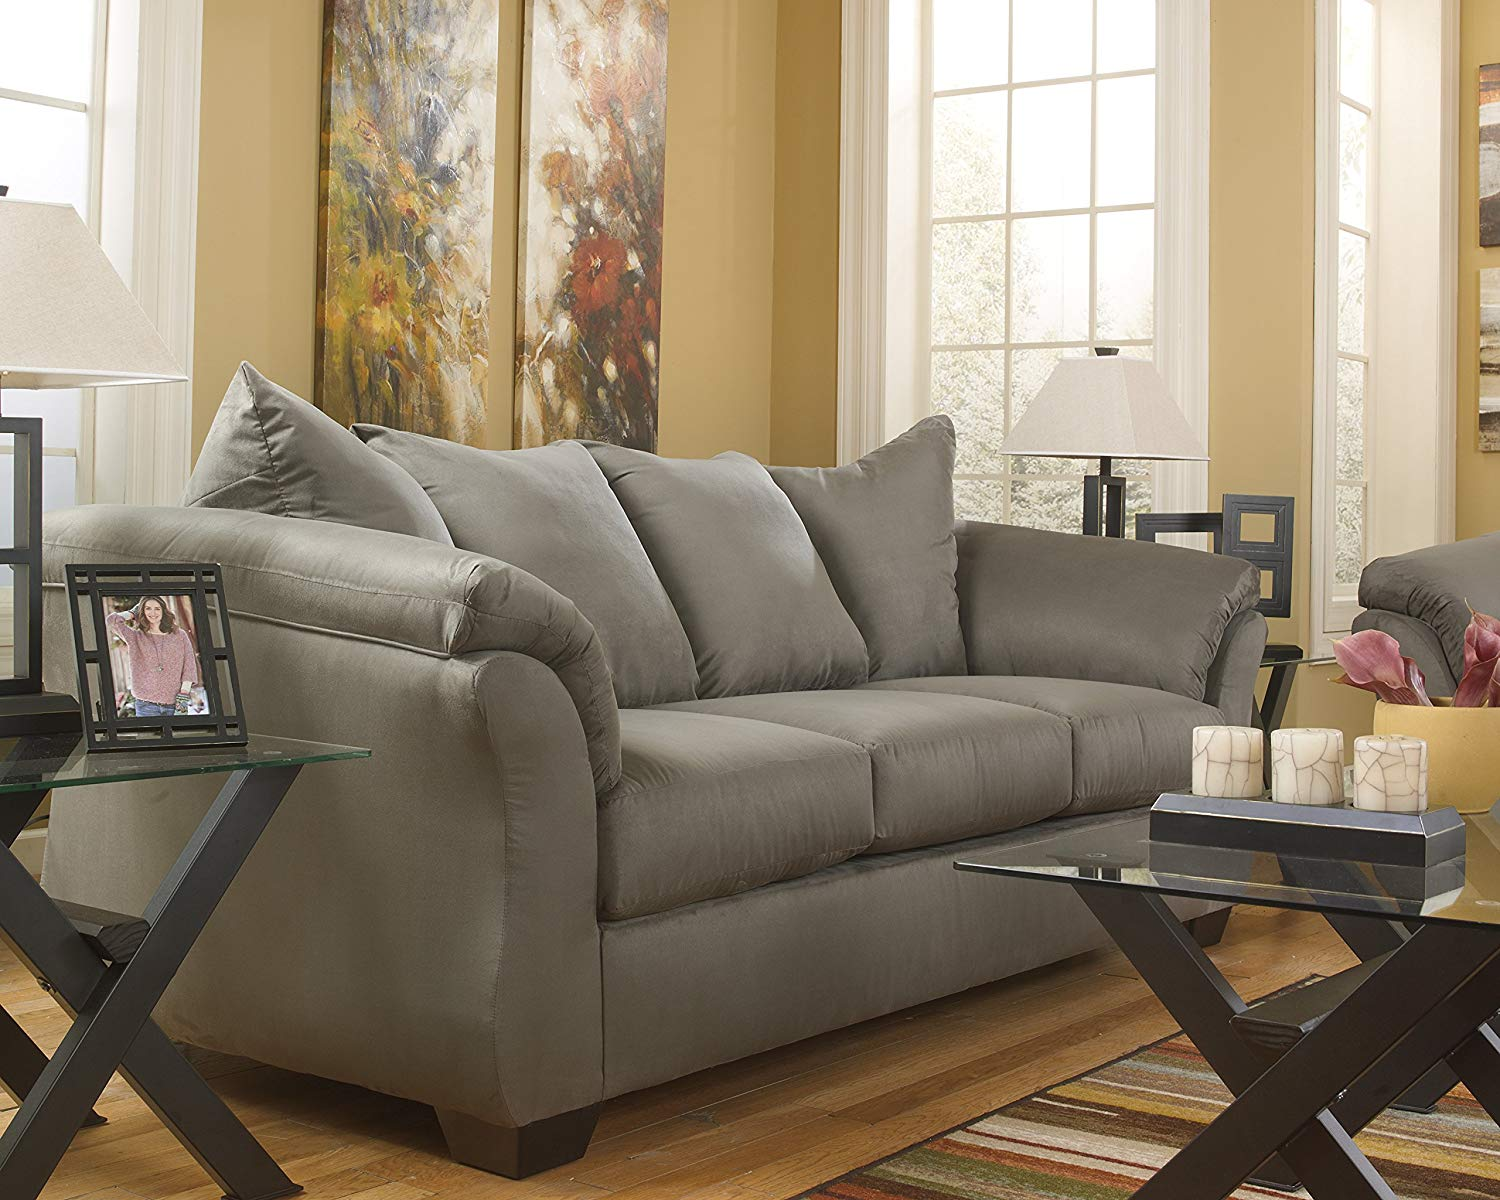 Darcy Sofa Ashley Review Cheap Sectional Sofas Under 500 For Living Room Furniture